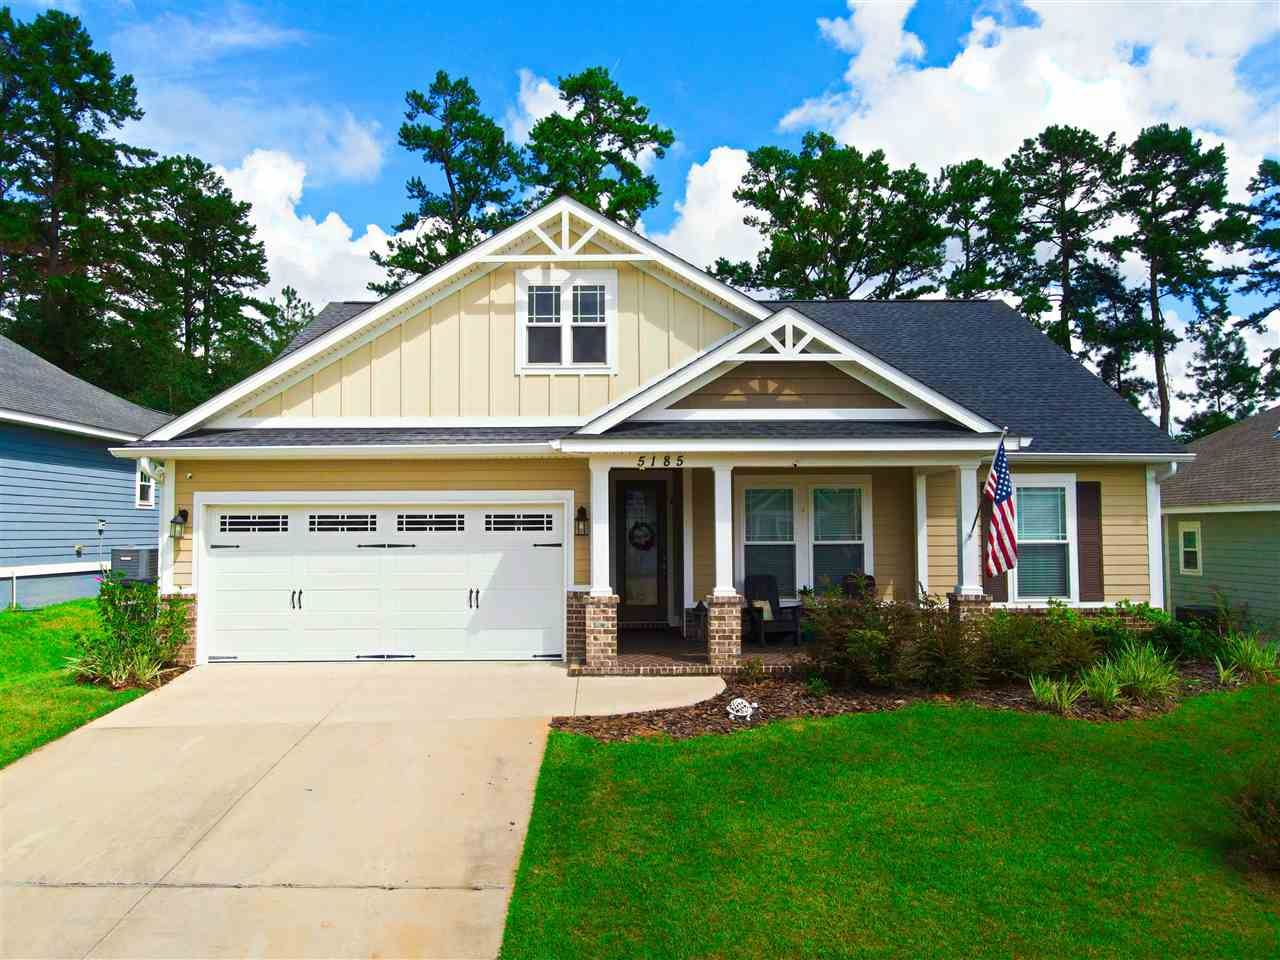 Photo of 5185 Holly Fern Trace, TALLAHASSEE, FL 32312 (MLS # 324275)